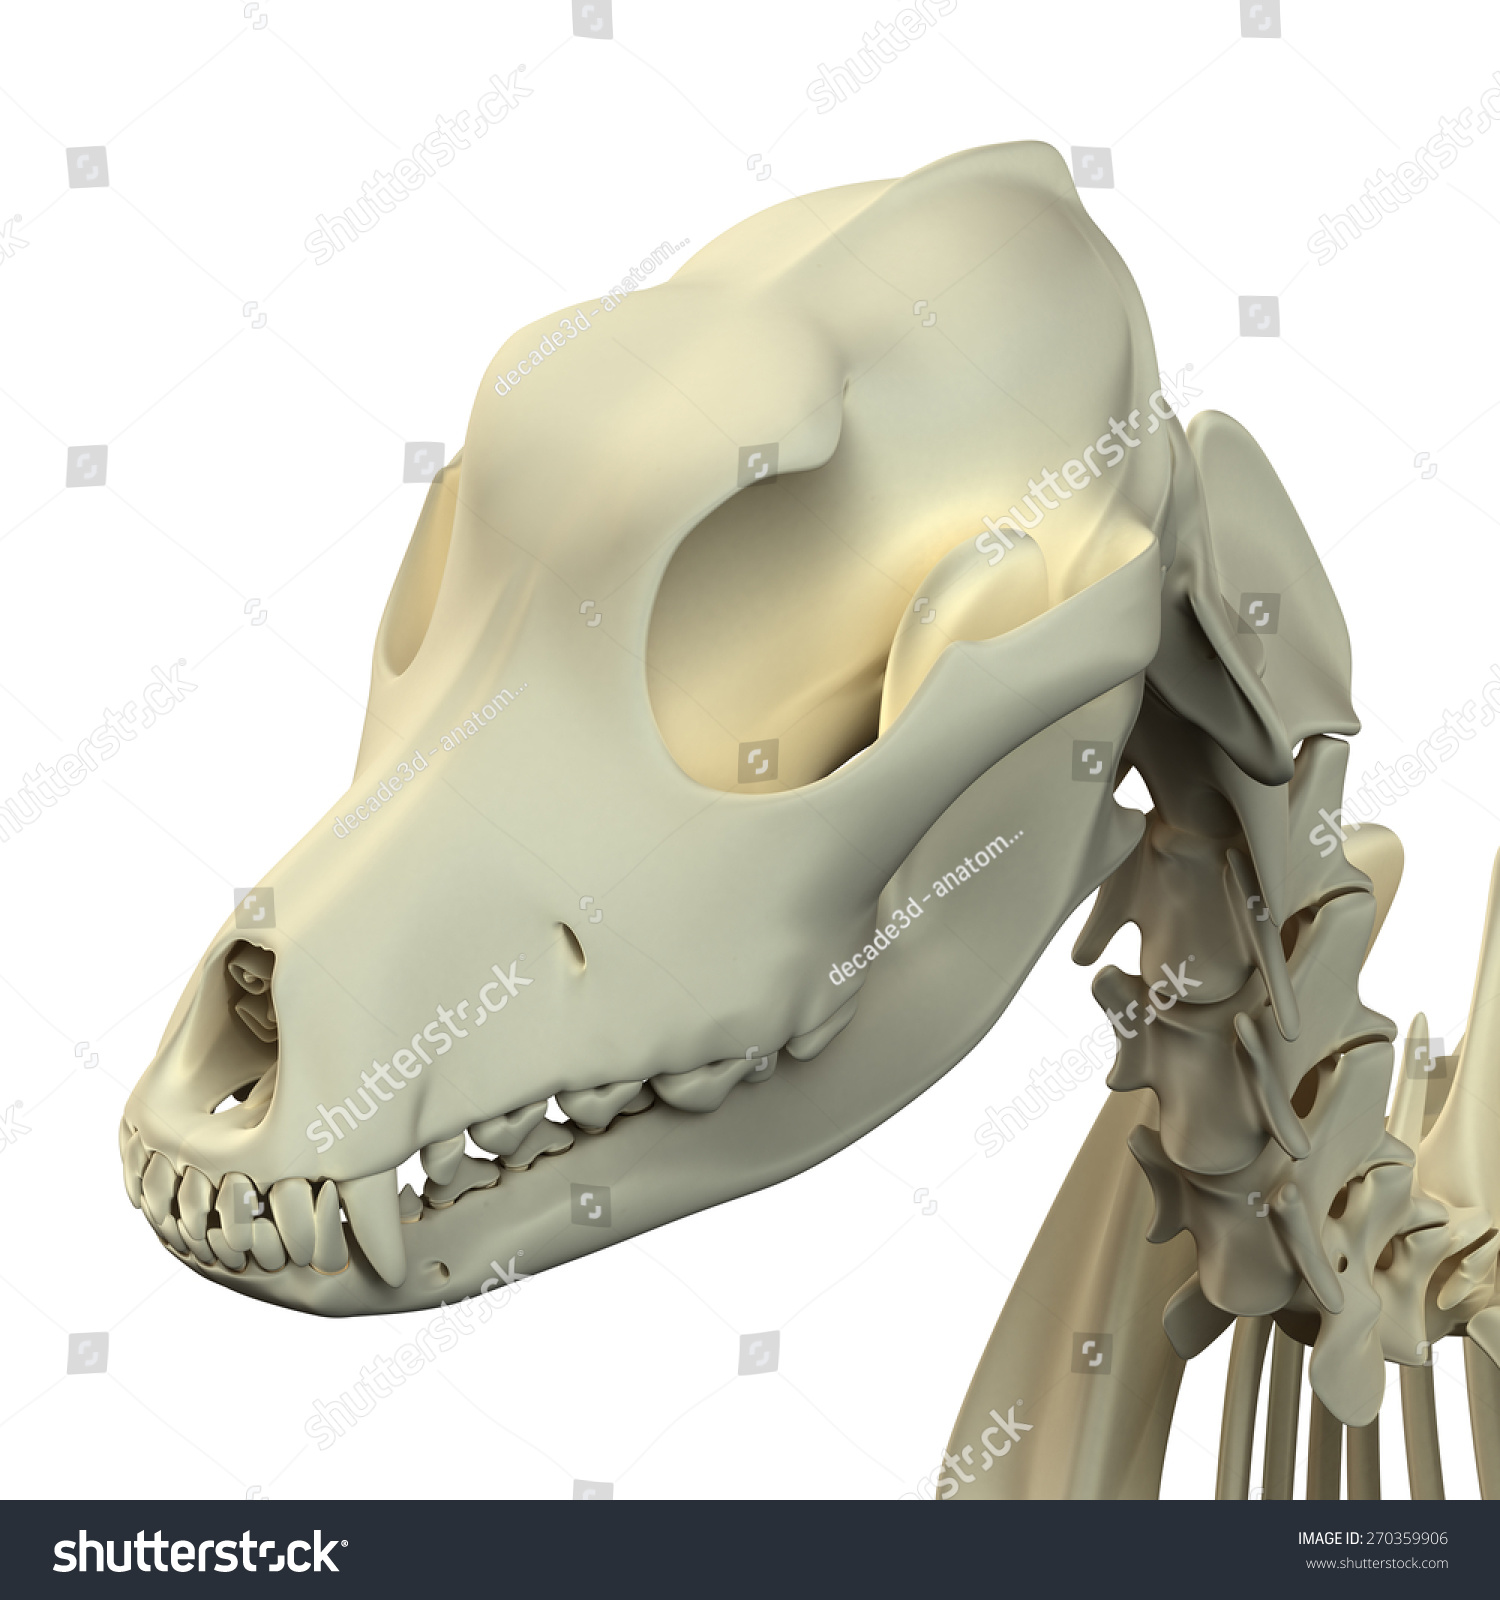 Dog Skull Anatomy Stock Illustration 270359906 - Shutterstock